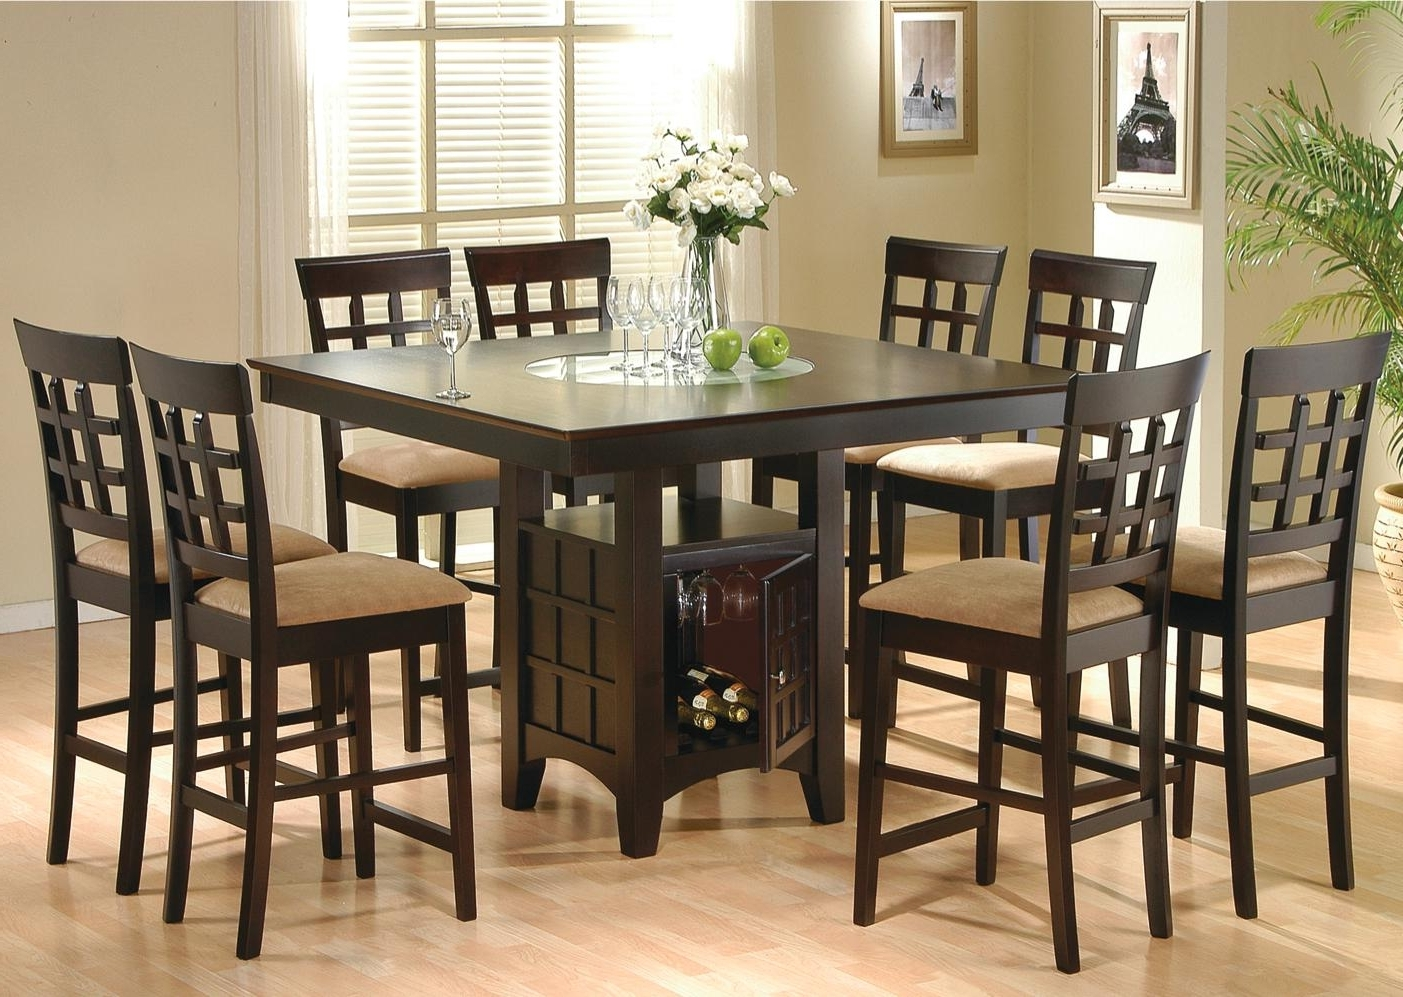 8 Chairs Dining Tables pertaining to Most Popular 8 Chair Dining Room Set - Www.cheekybeaglestudios